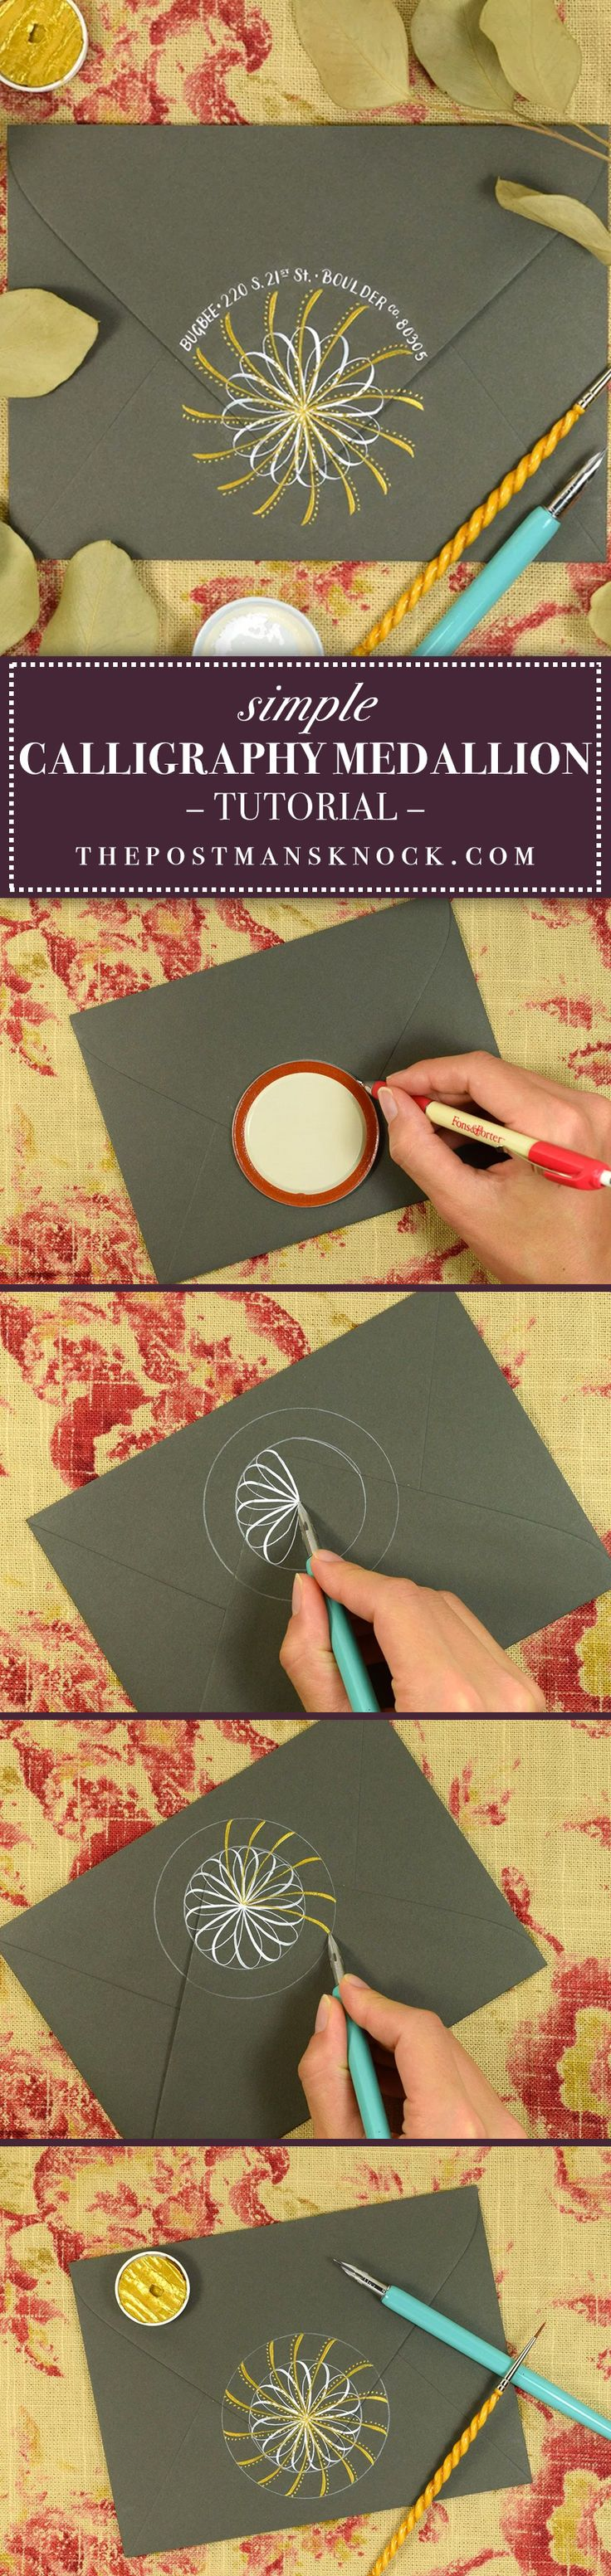 This calligraphy medallion tutorial is perfect for those who are pressed for time or want some dip pen practice! Three simple components come together to form a true visual treat that you'll be proud you made.